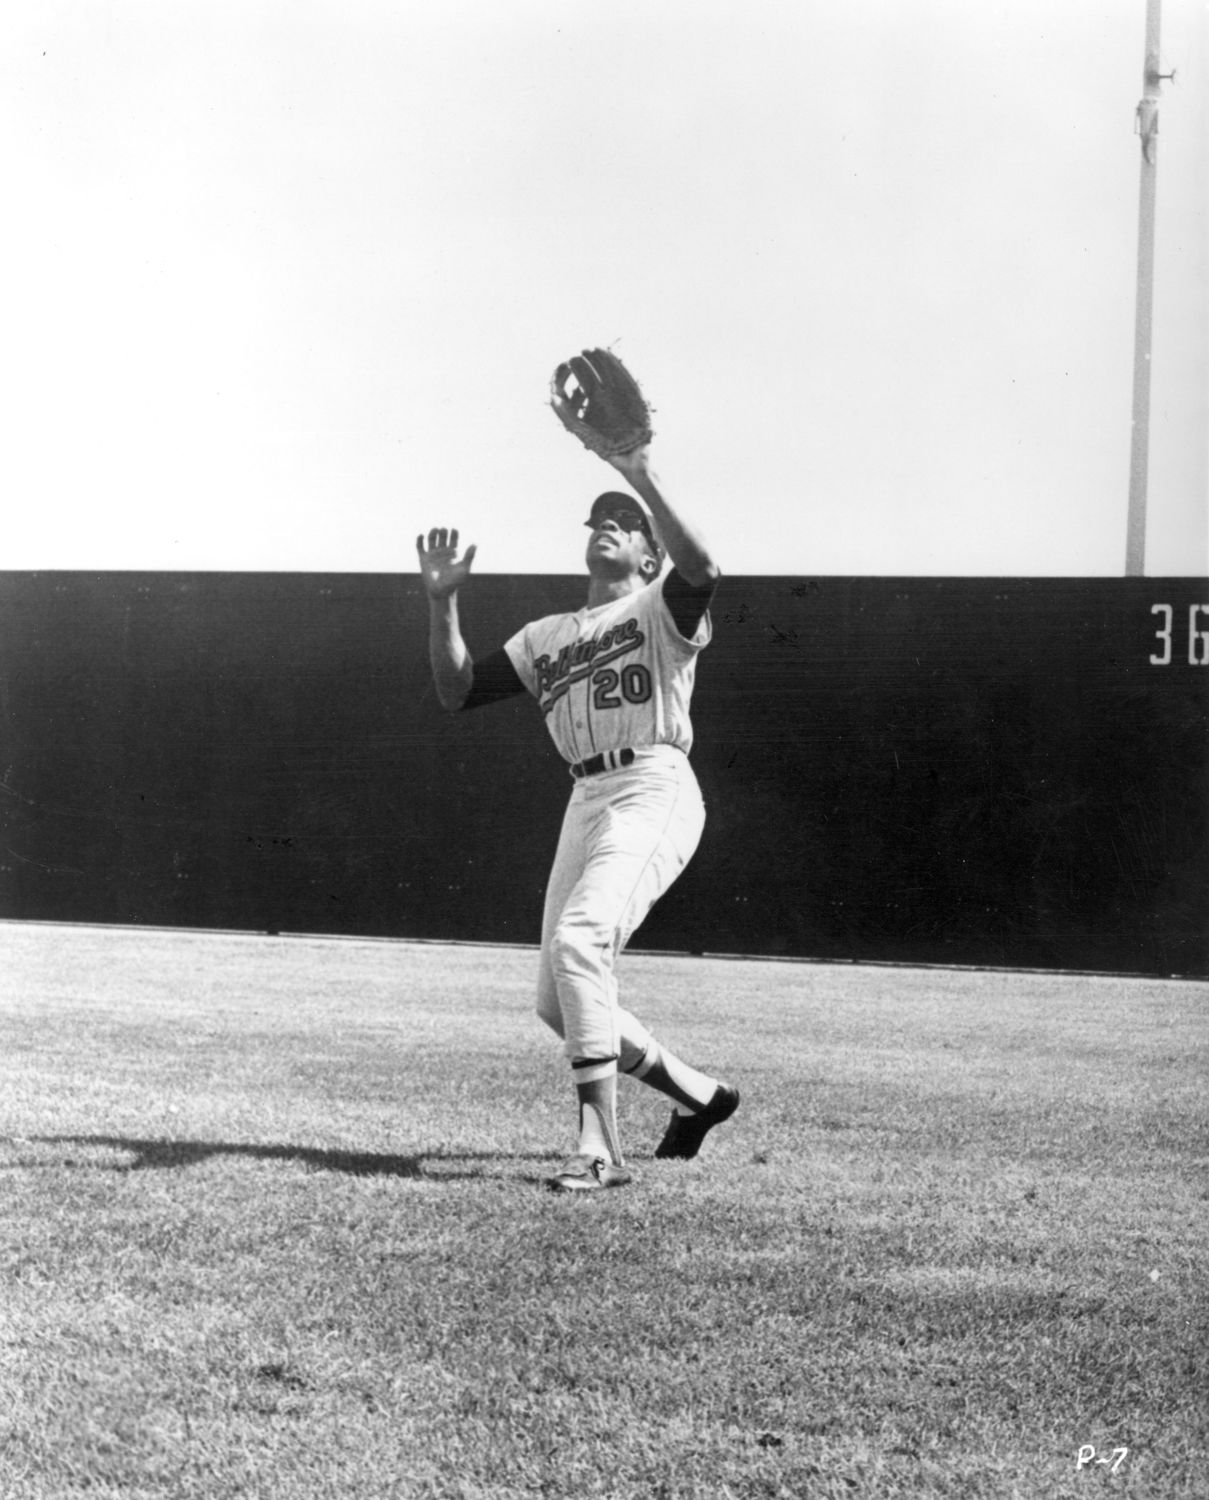 cd77a453e Frank Robinson of the Baltimore Orioles about to make catch - BL-6531-88  (National Baseball Hall of Fame Library)